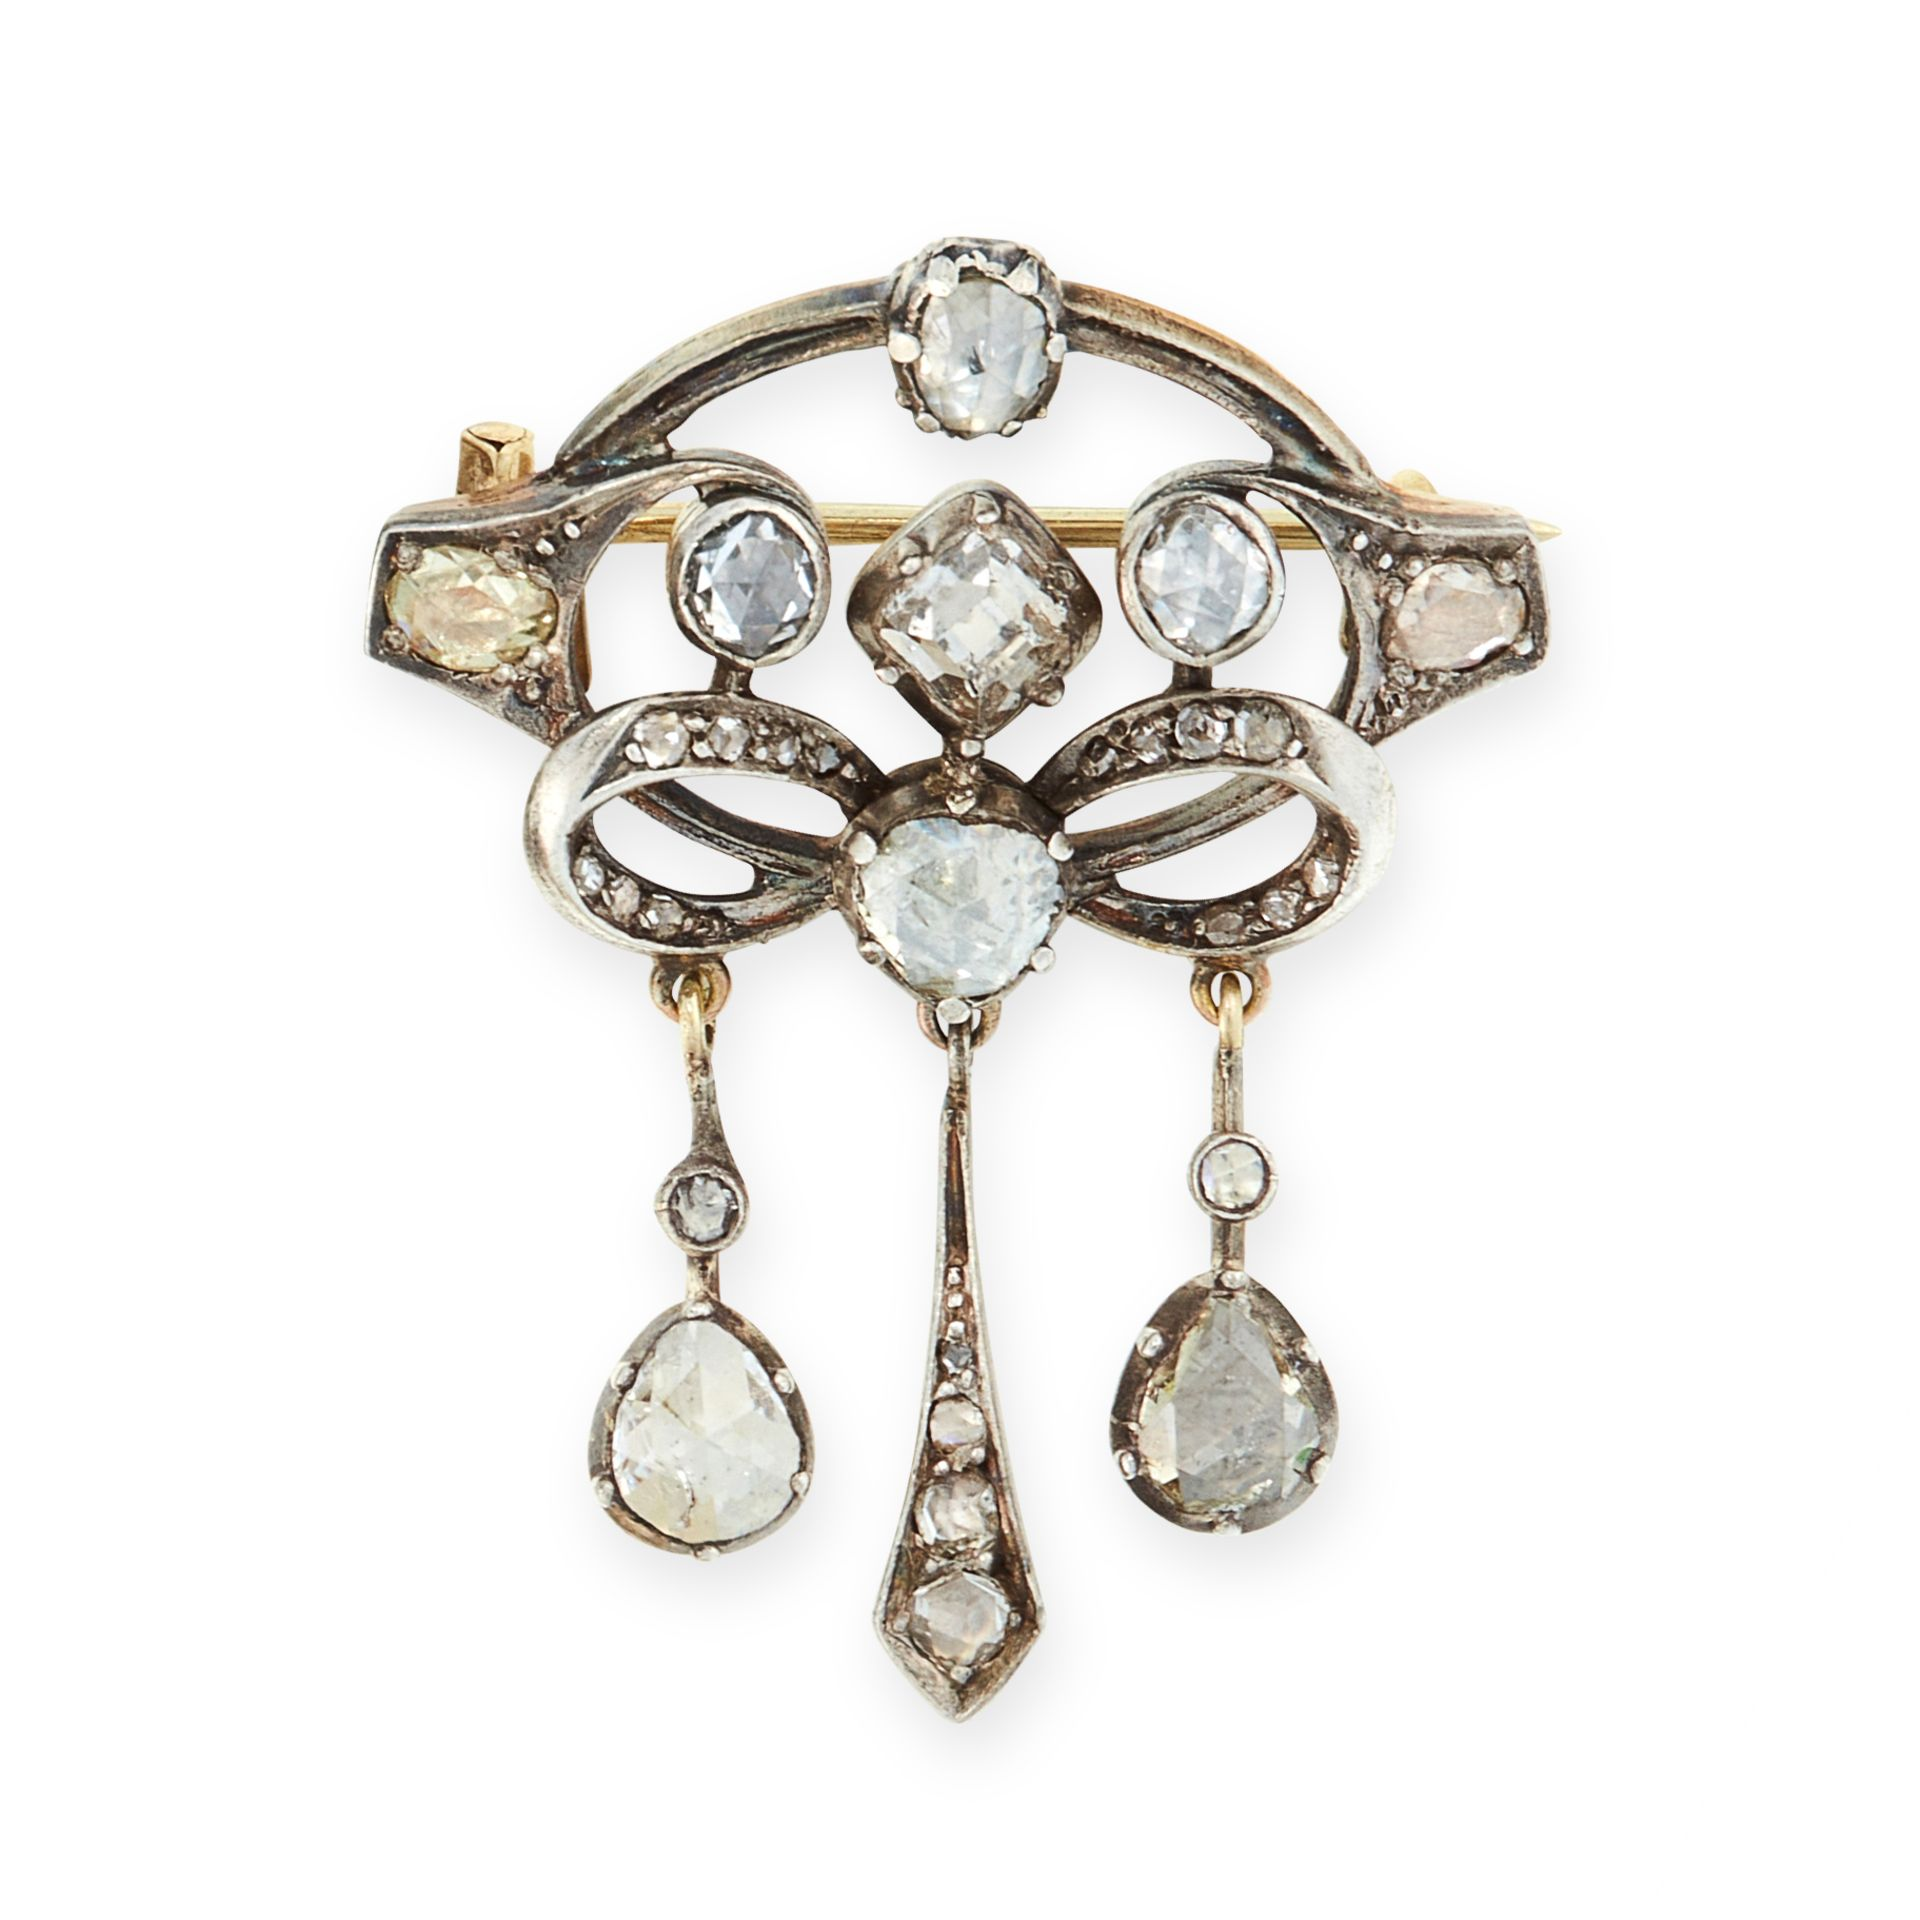 AN ANTIQUE DIAMOND BROOCH, LATE 19TH CENTURY in yellow gold and silver the openwork body jewelled